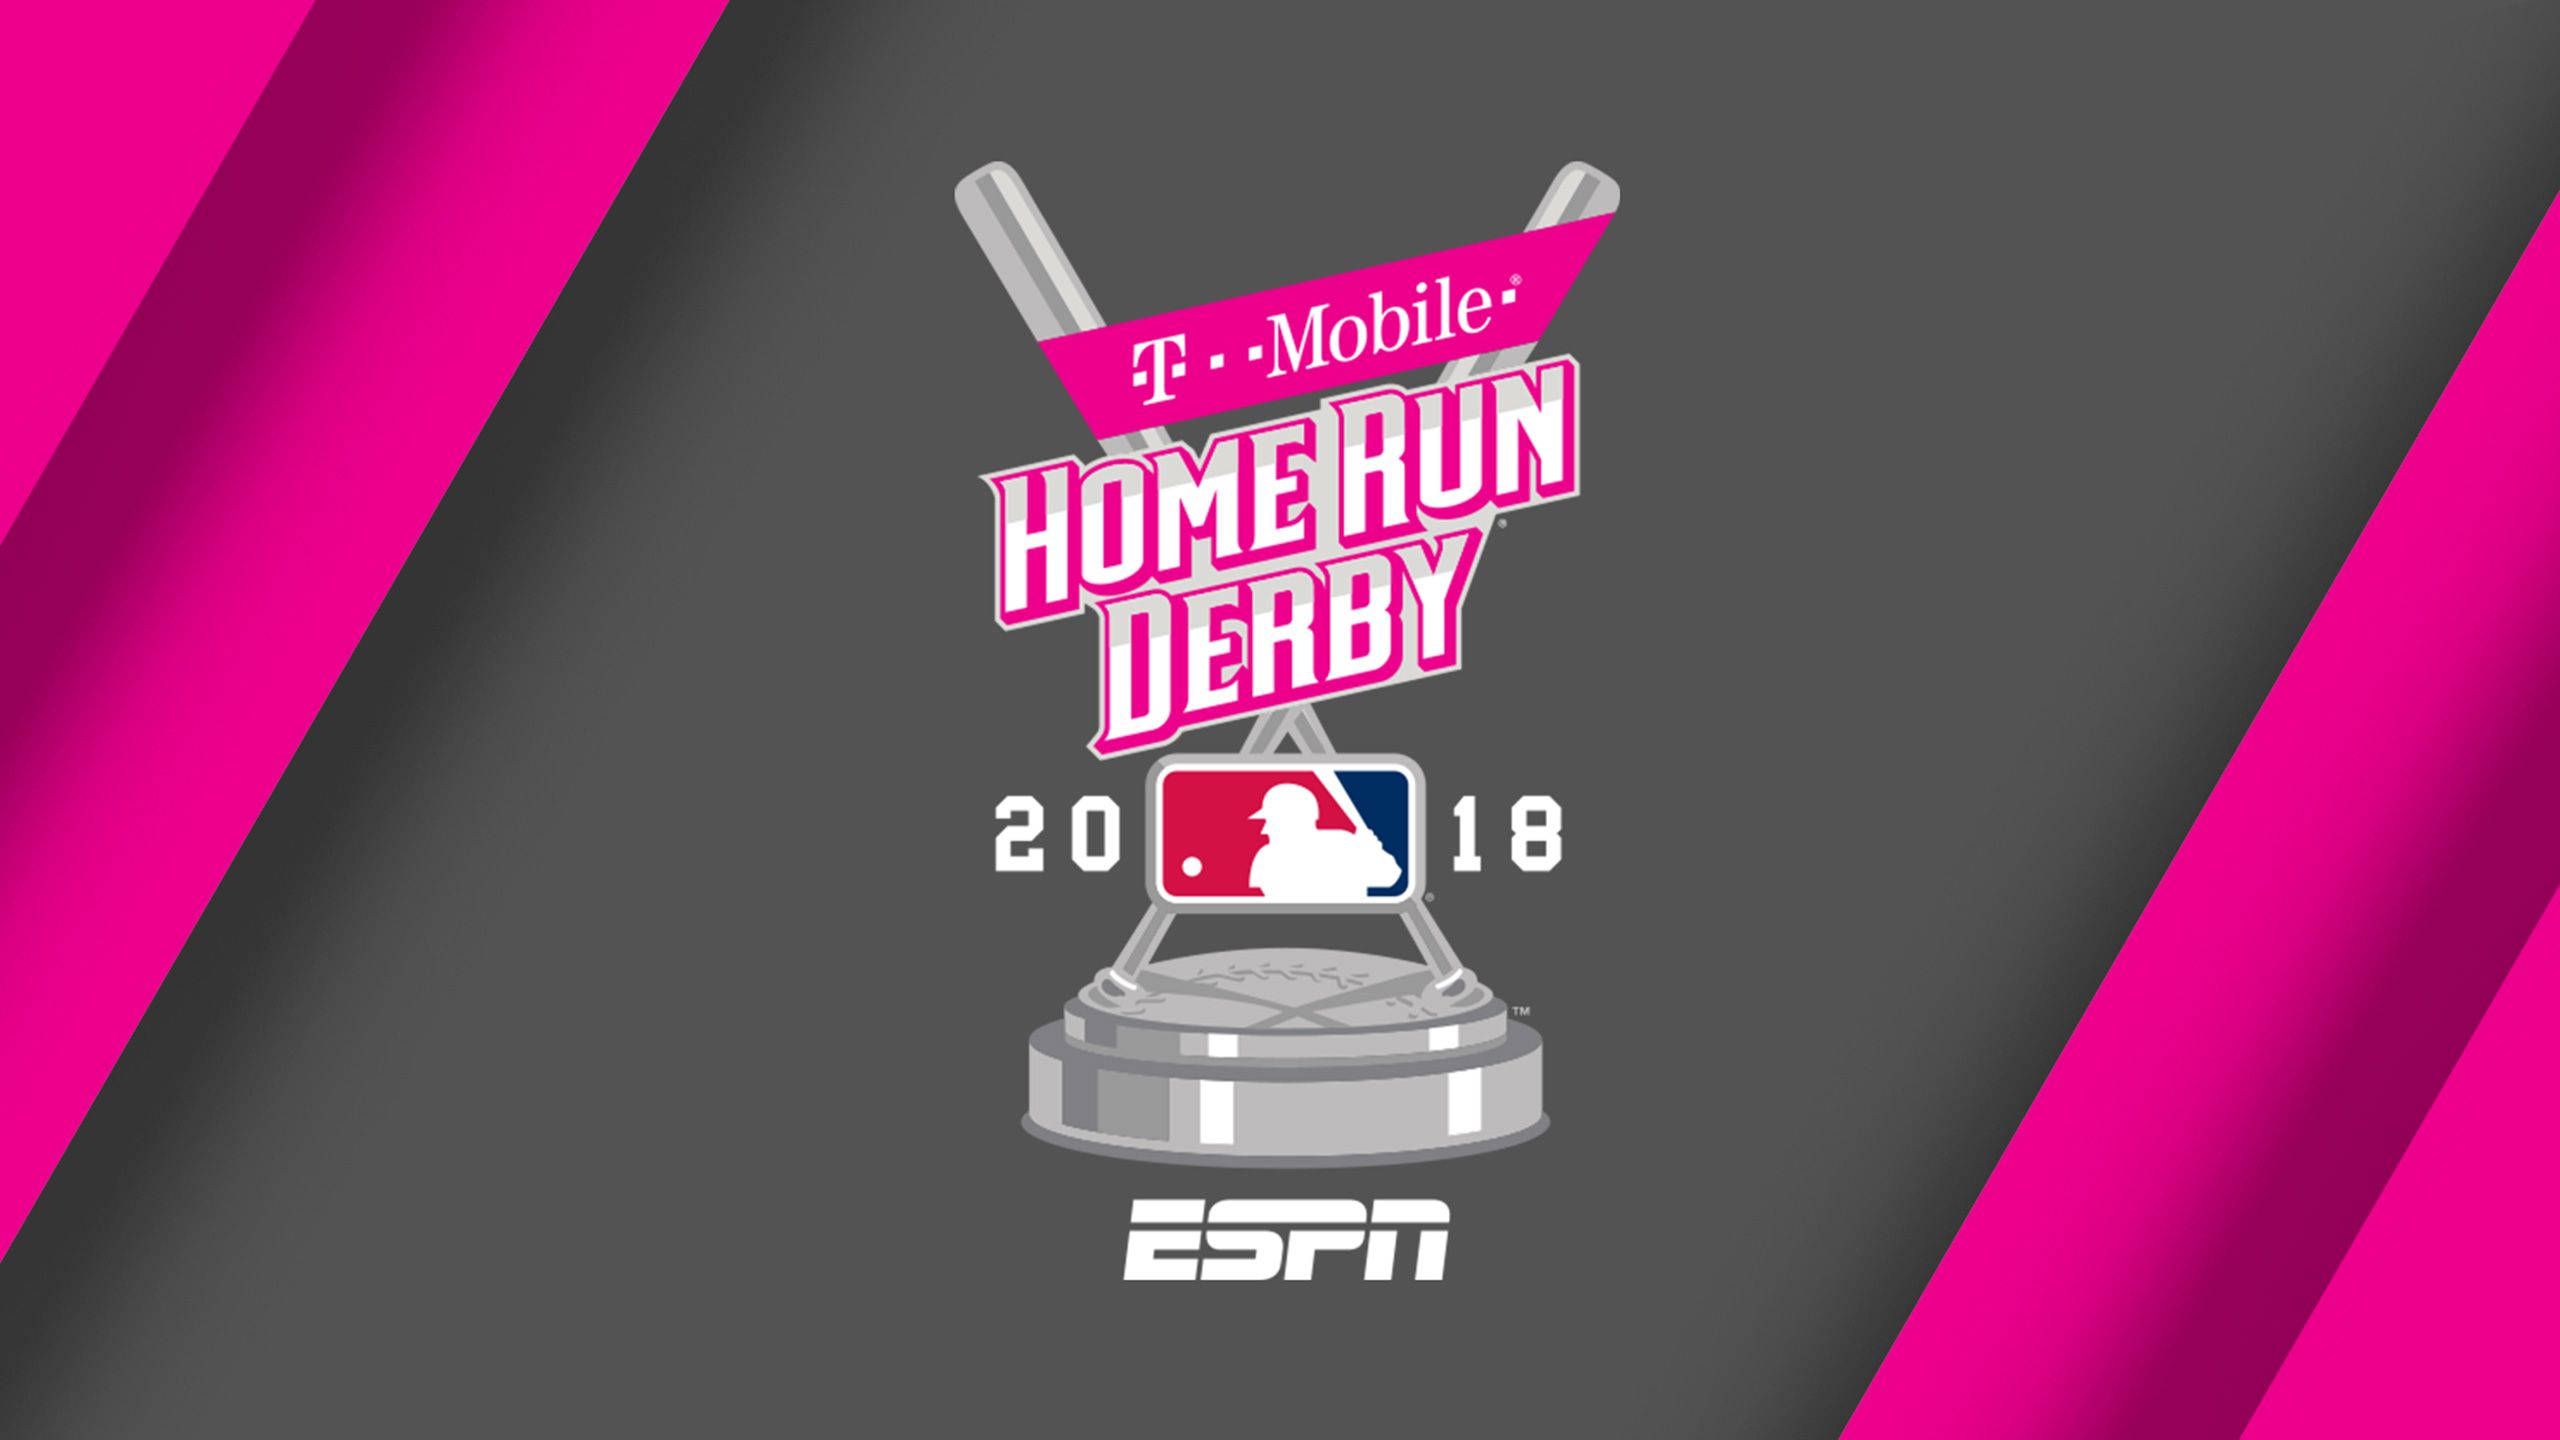 2018 T-Mobile Home Run Derby